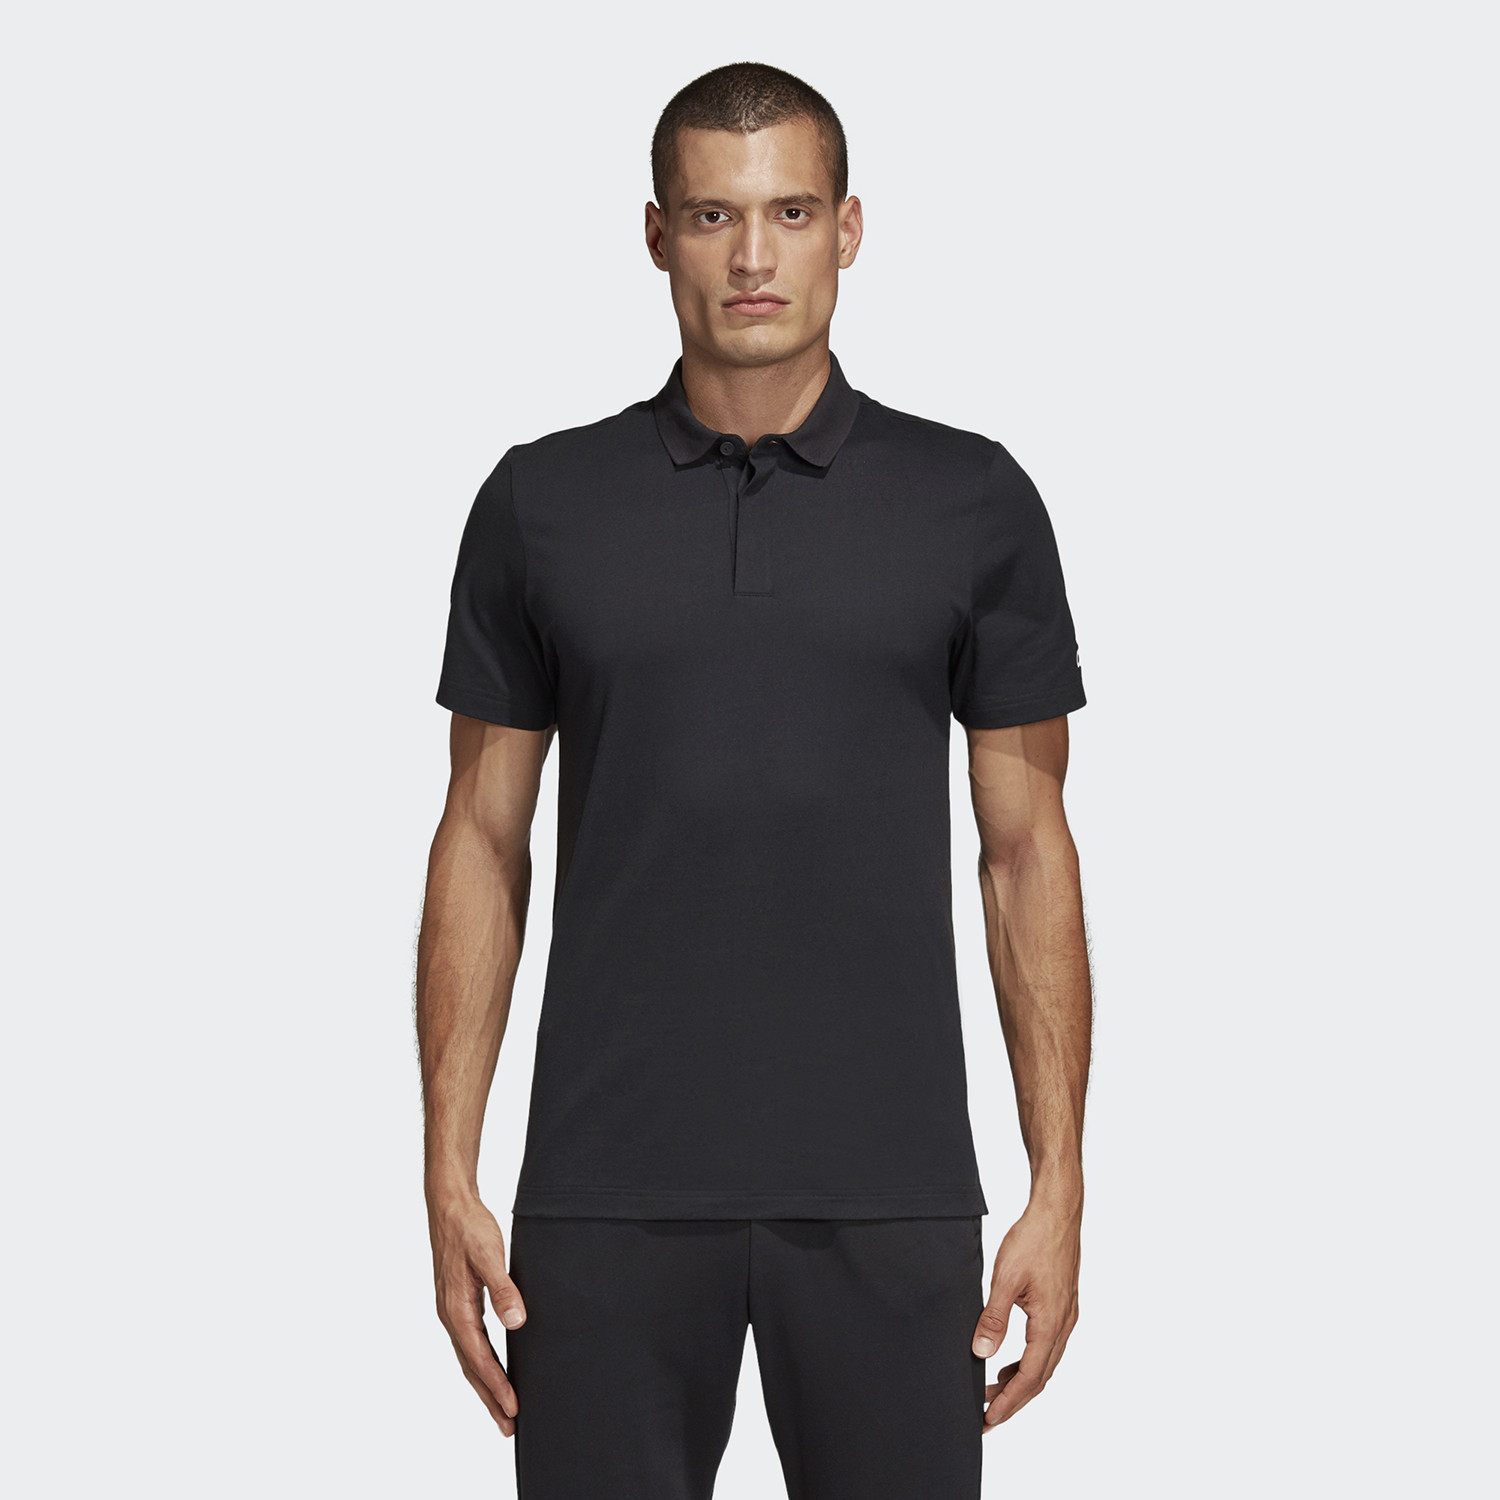 adidas Performance Must Haves Men's Plain Polo Shirt (9000044608_1469)